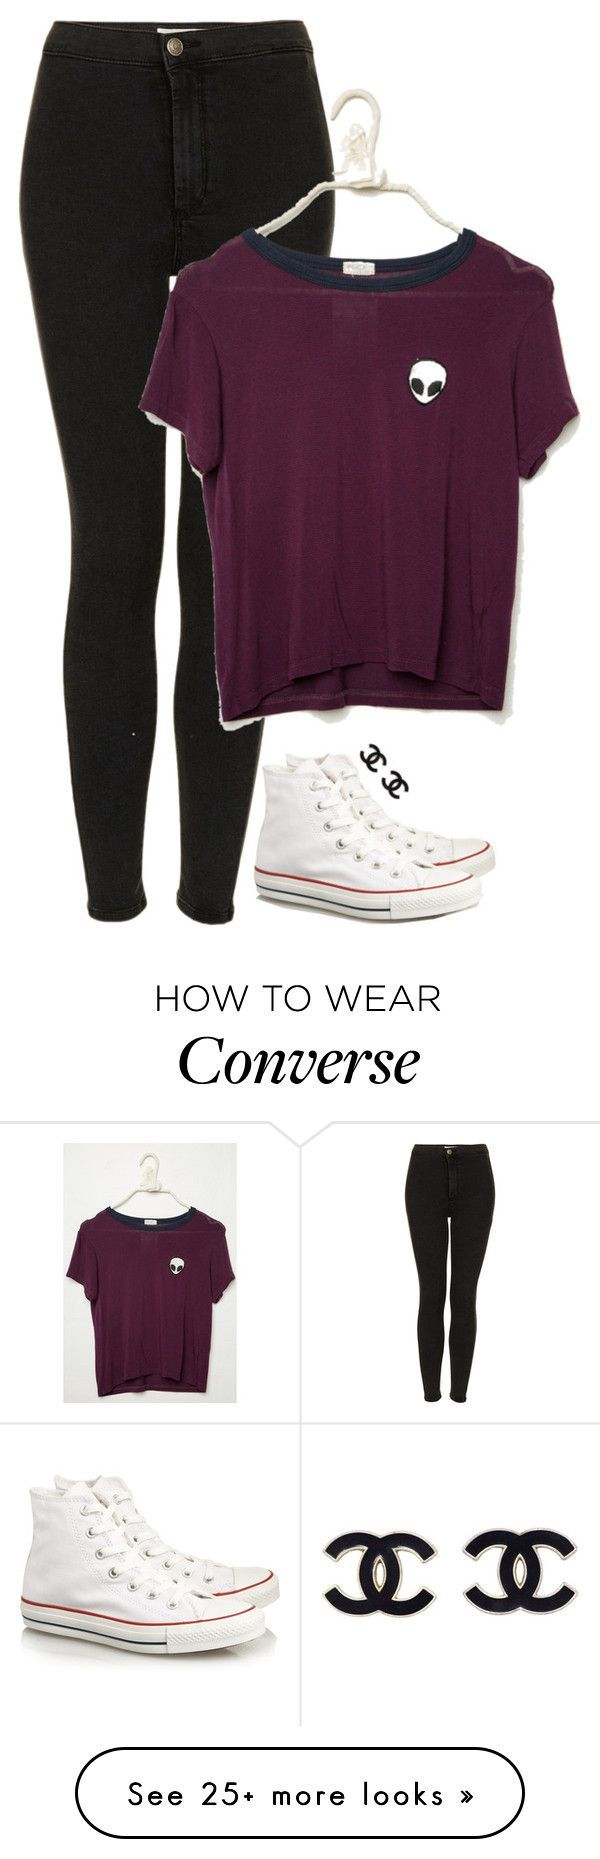 """We are the new Americana, raised on biggie and nirvana."" by meljordrum on Polyvore featuring Topshop and Converse"